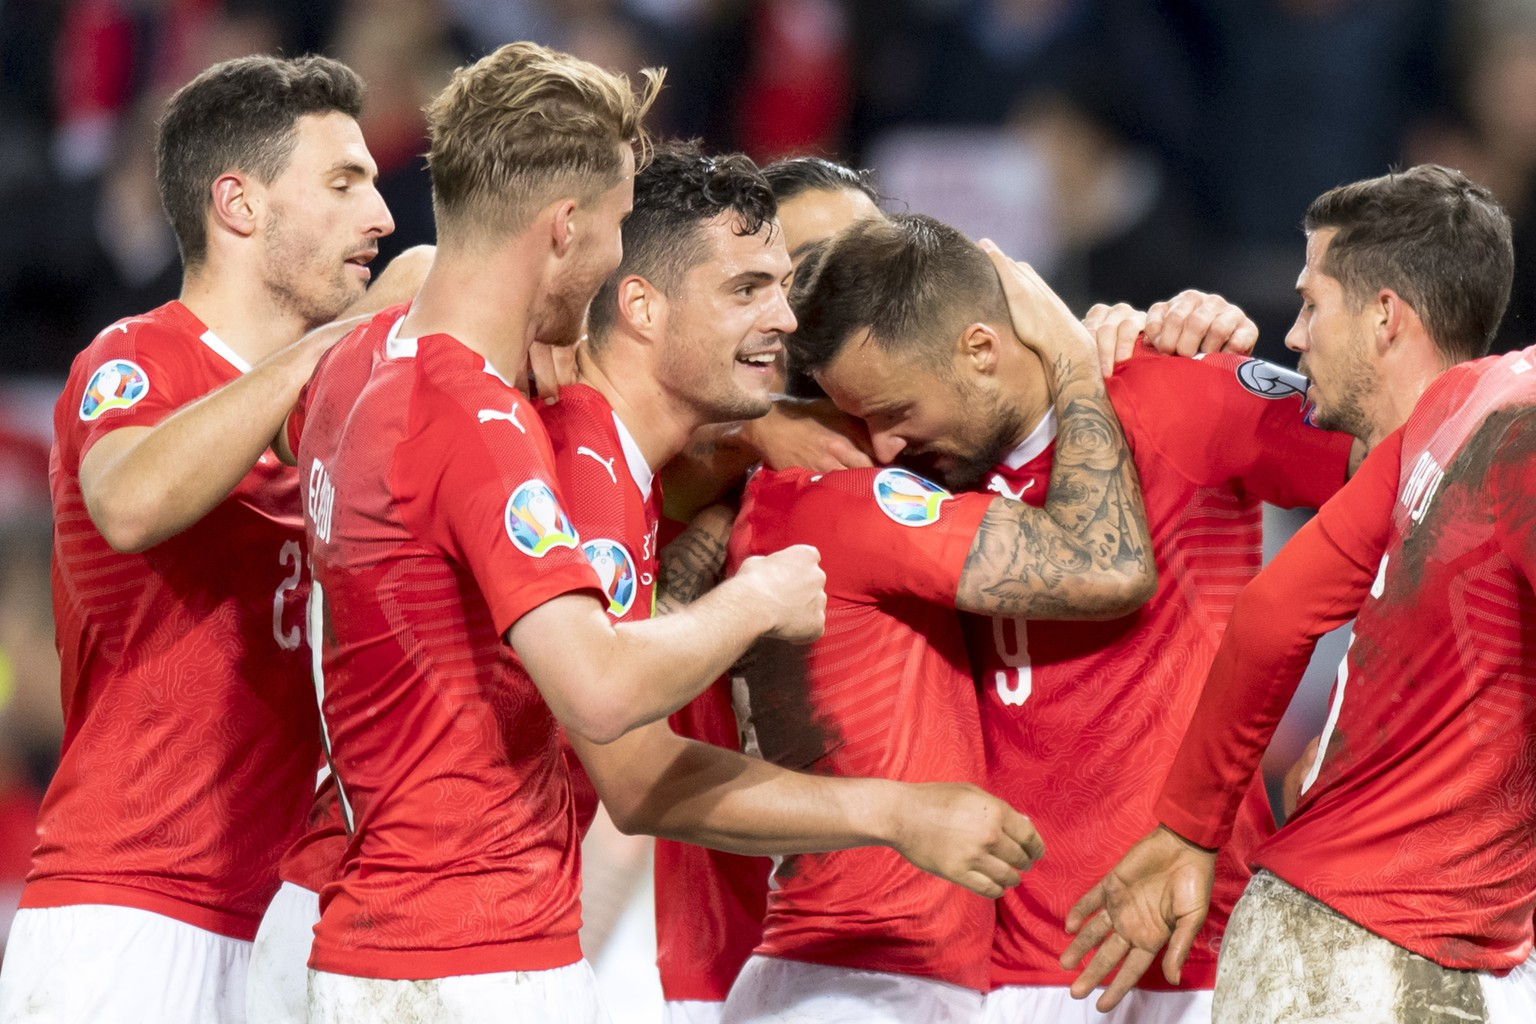 epa07923678 Switzerland's players celebrate the win after the UEFA Euro 2020 qualifying Group D soccer match between Switzerland and the Republic of Ireland, at the Stade de Geneve, in Geneva, Switzerland, 15 October 2019.  EPA/LAURENT GILLIERON